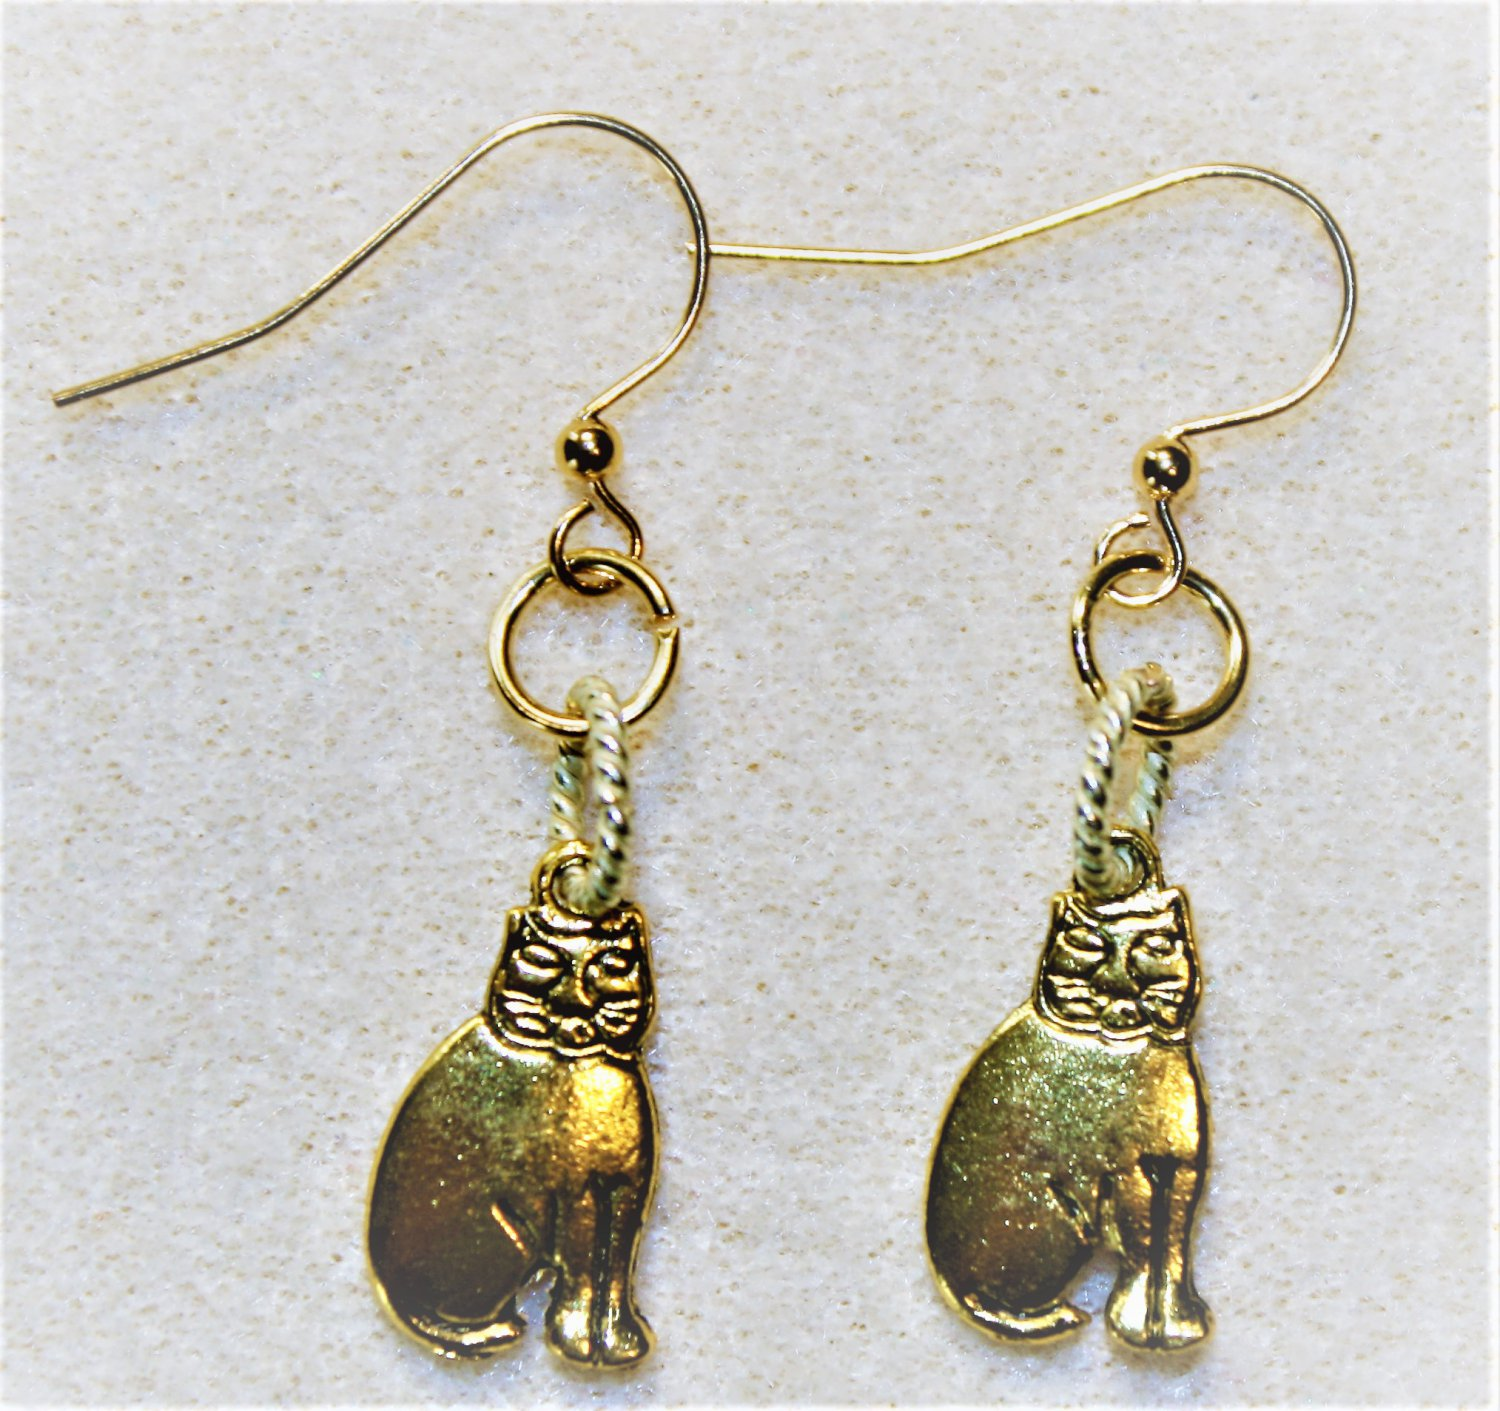 Goldtone Cheshire Cat Earrings - Item #E467